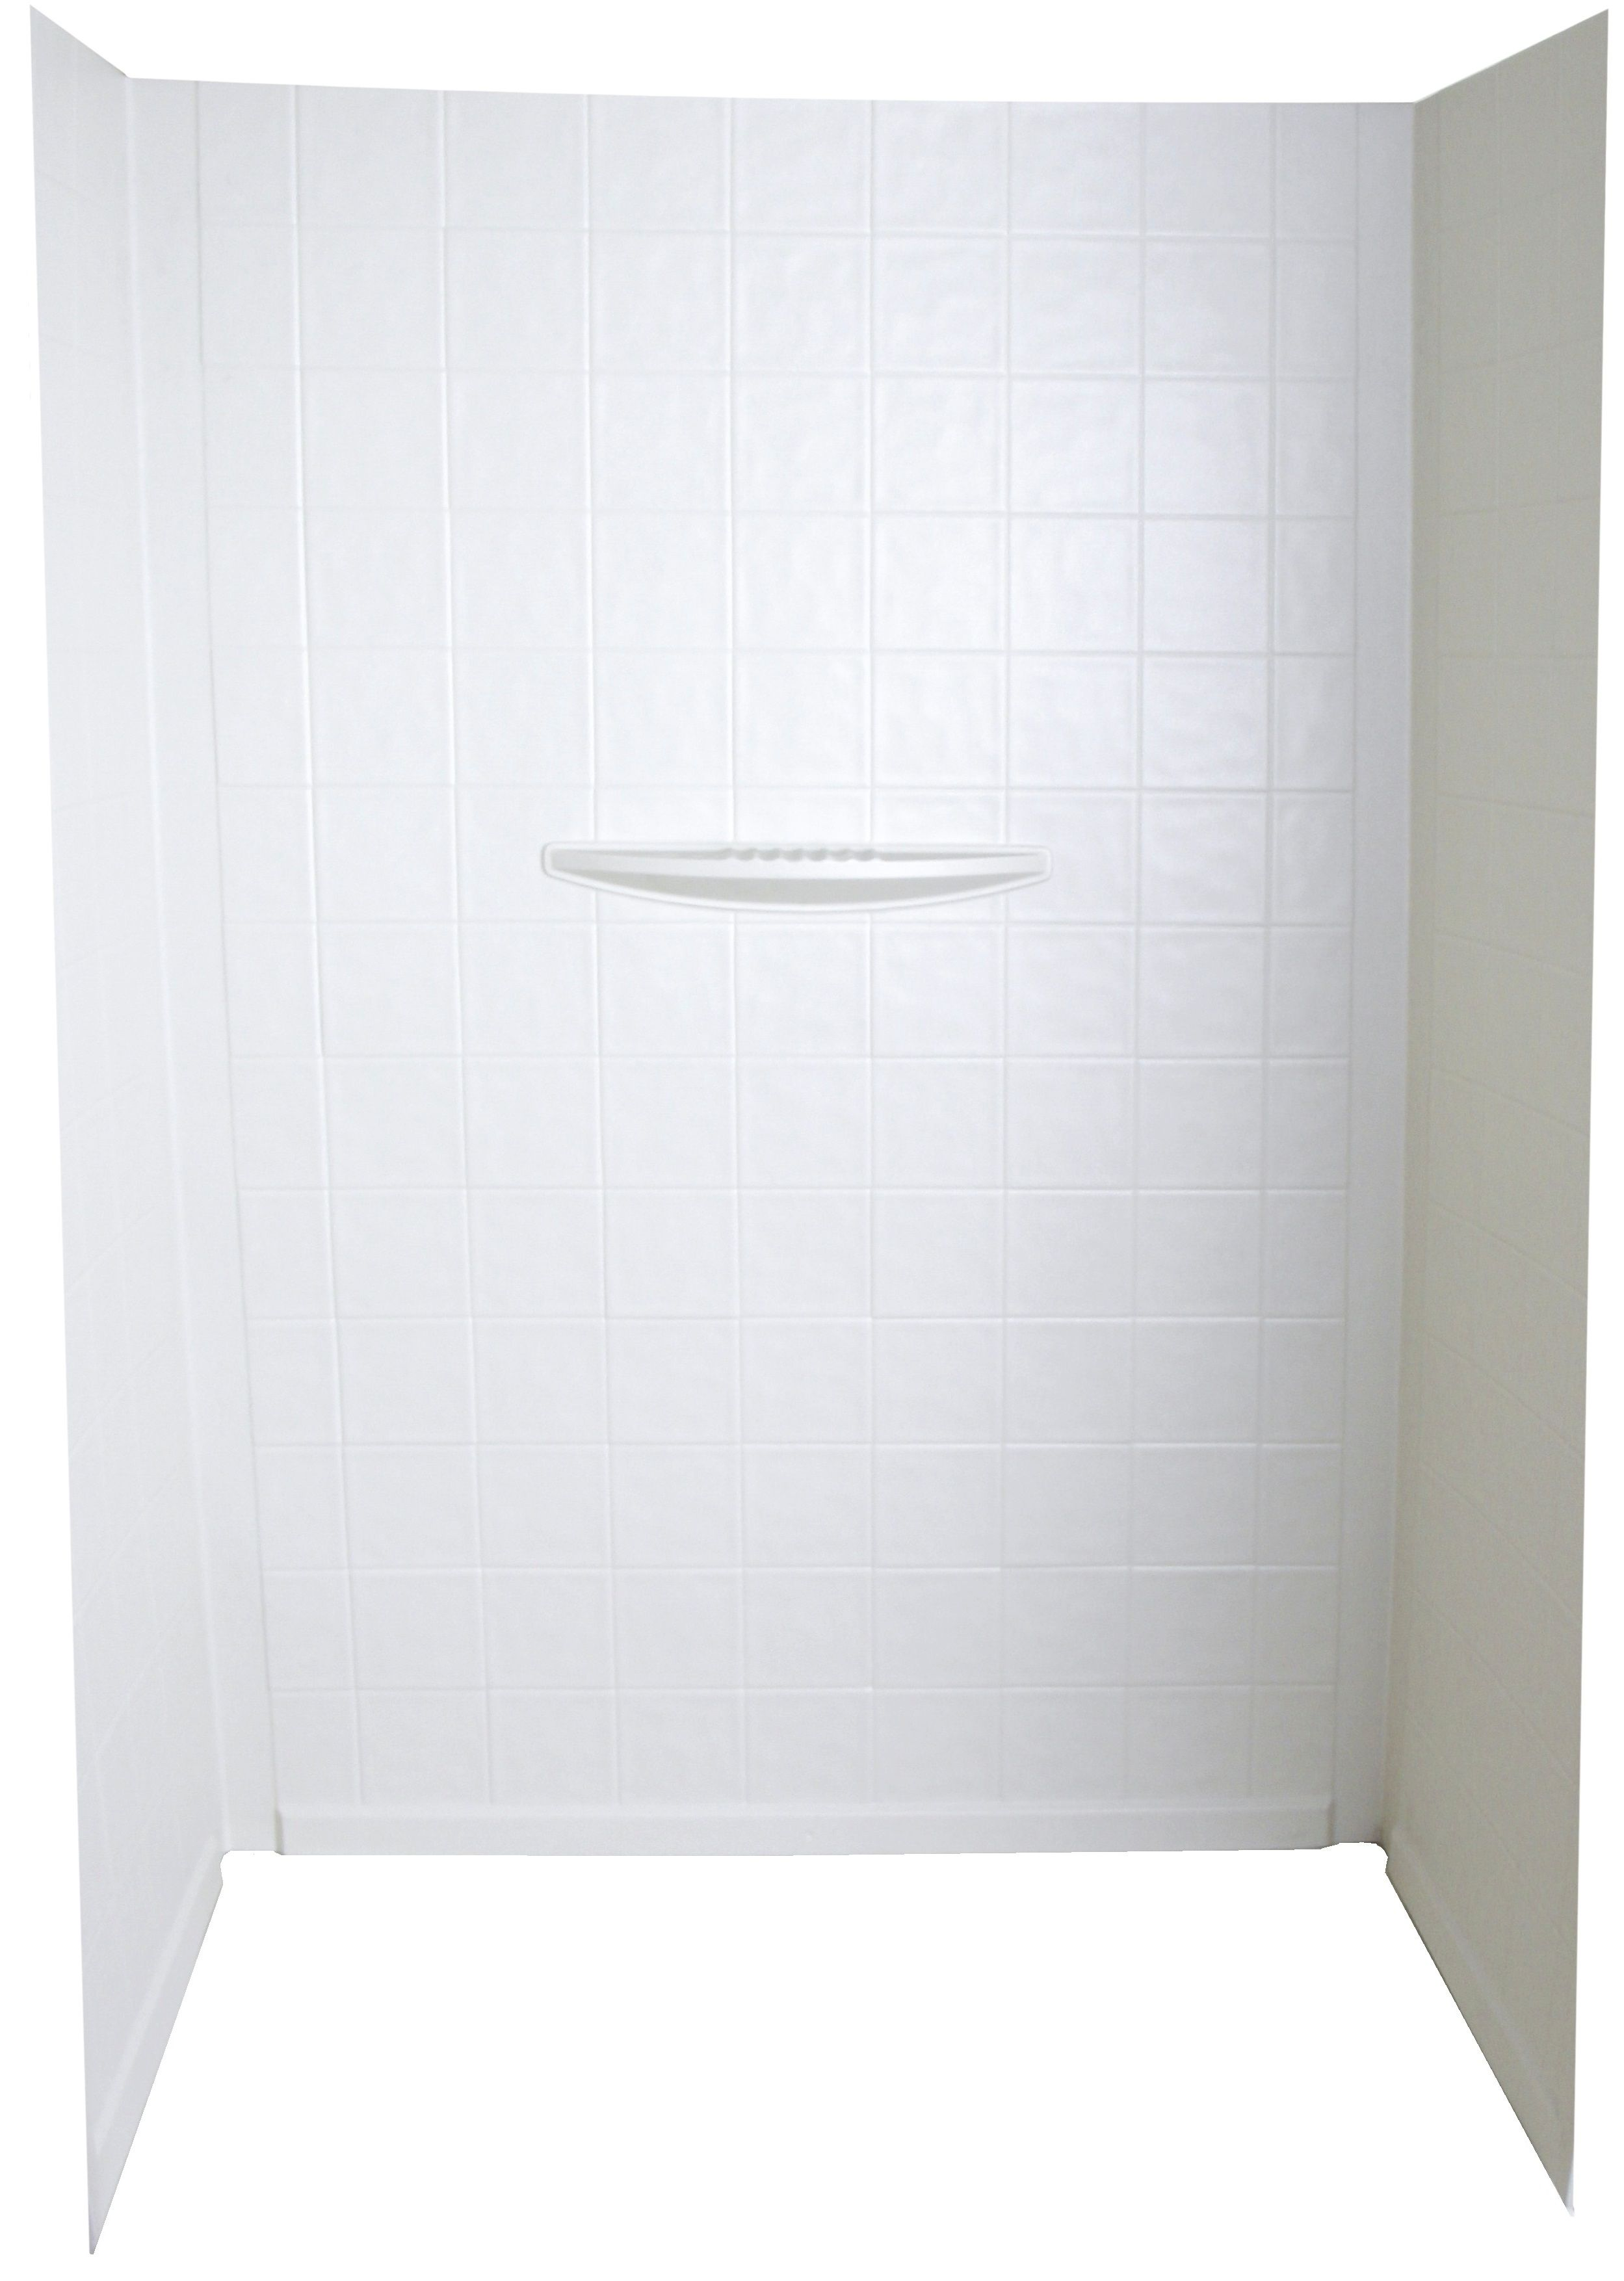 R G Mobile Home Supply Wall Surrounds For 24 X 36 Rv Bathtubs